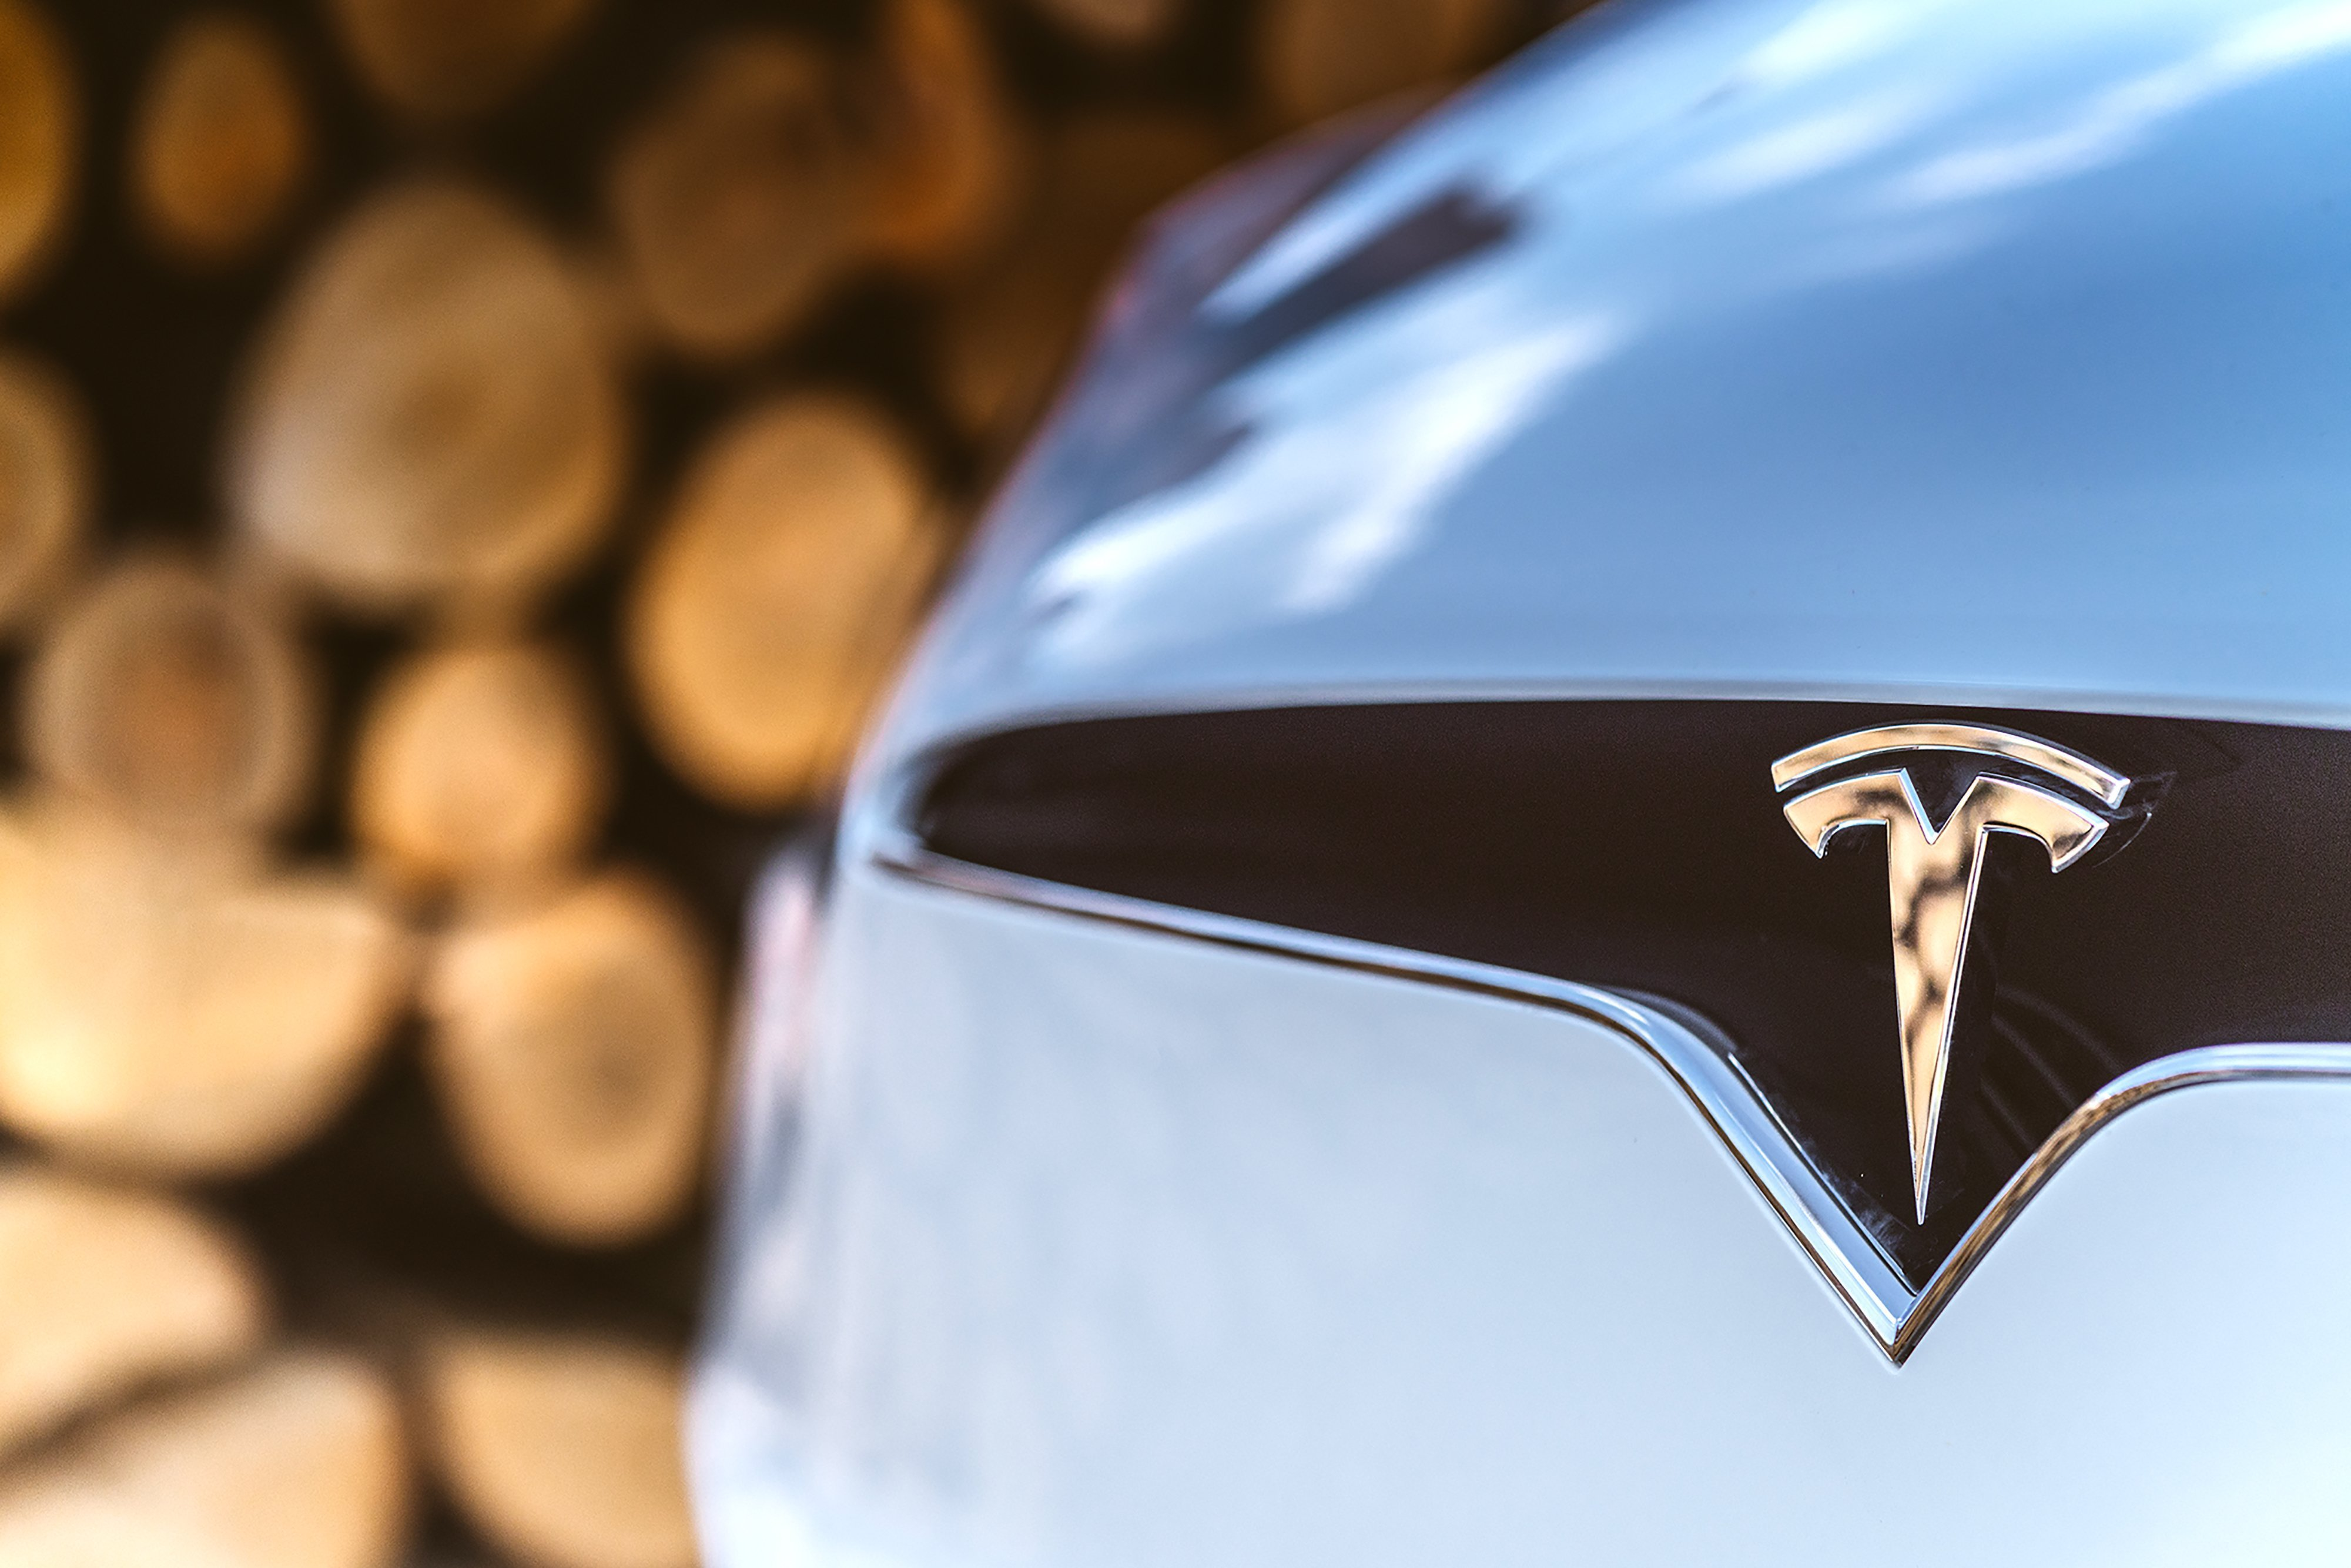 Tesla is losing another top executive. This time, it's the electric car firm's vice president of worldwide finance and operation.